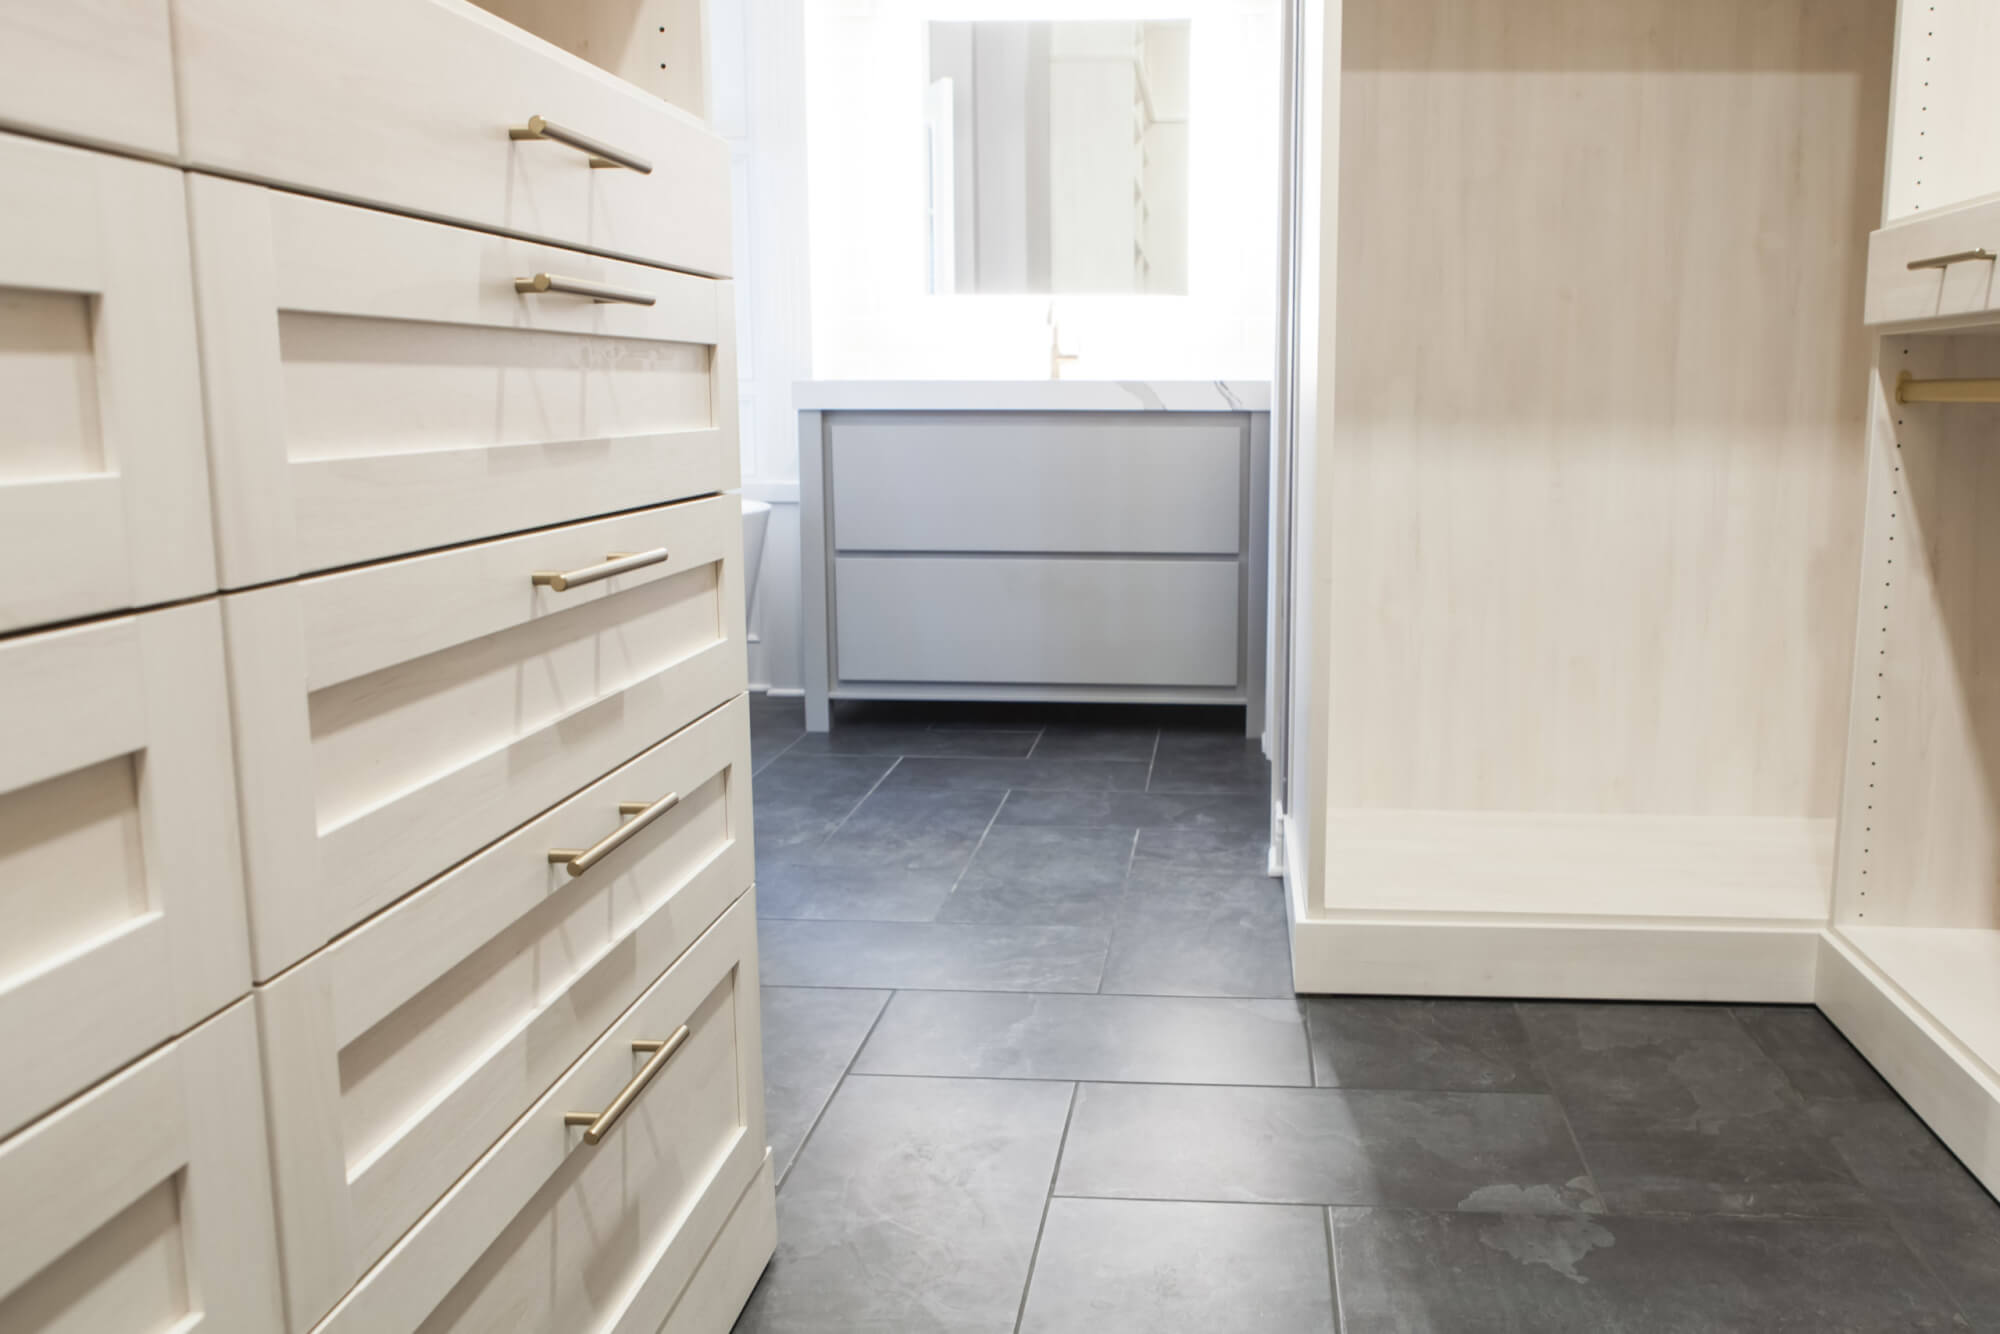 master bathroom closet area with custom built-in shelving and drawers